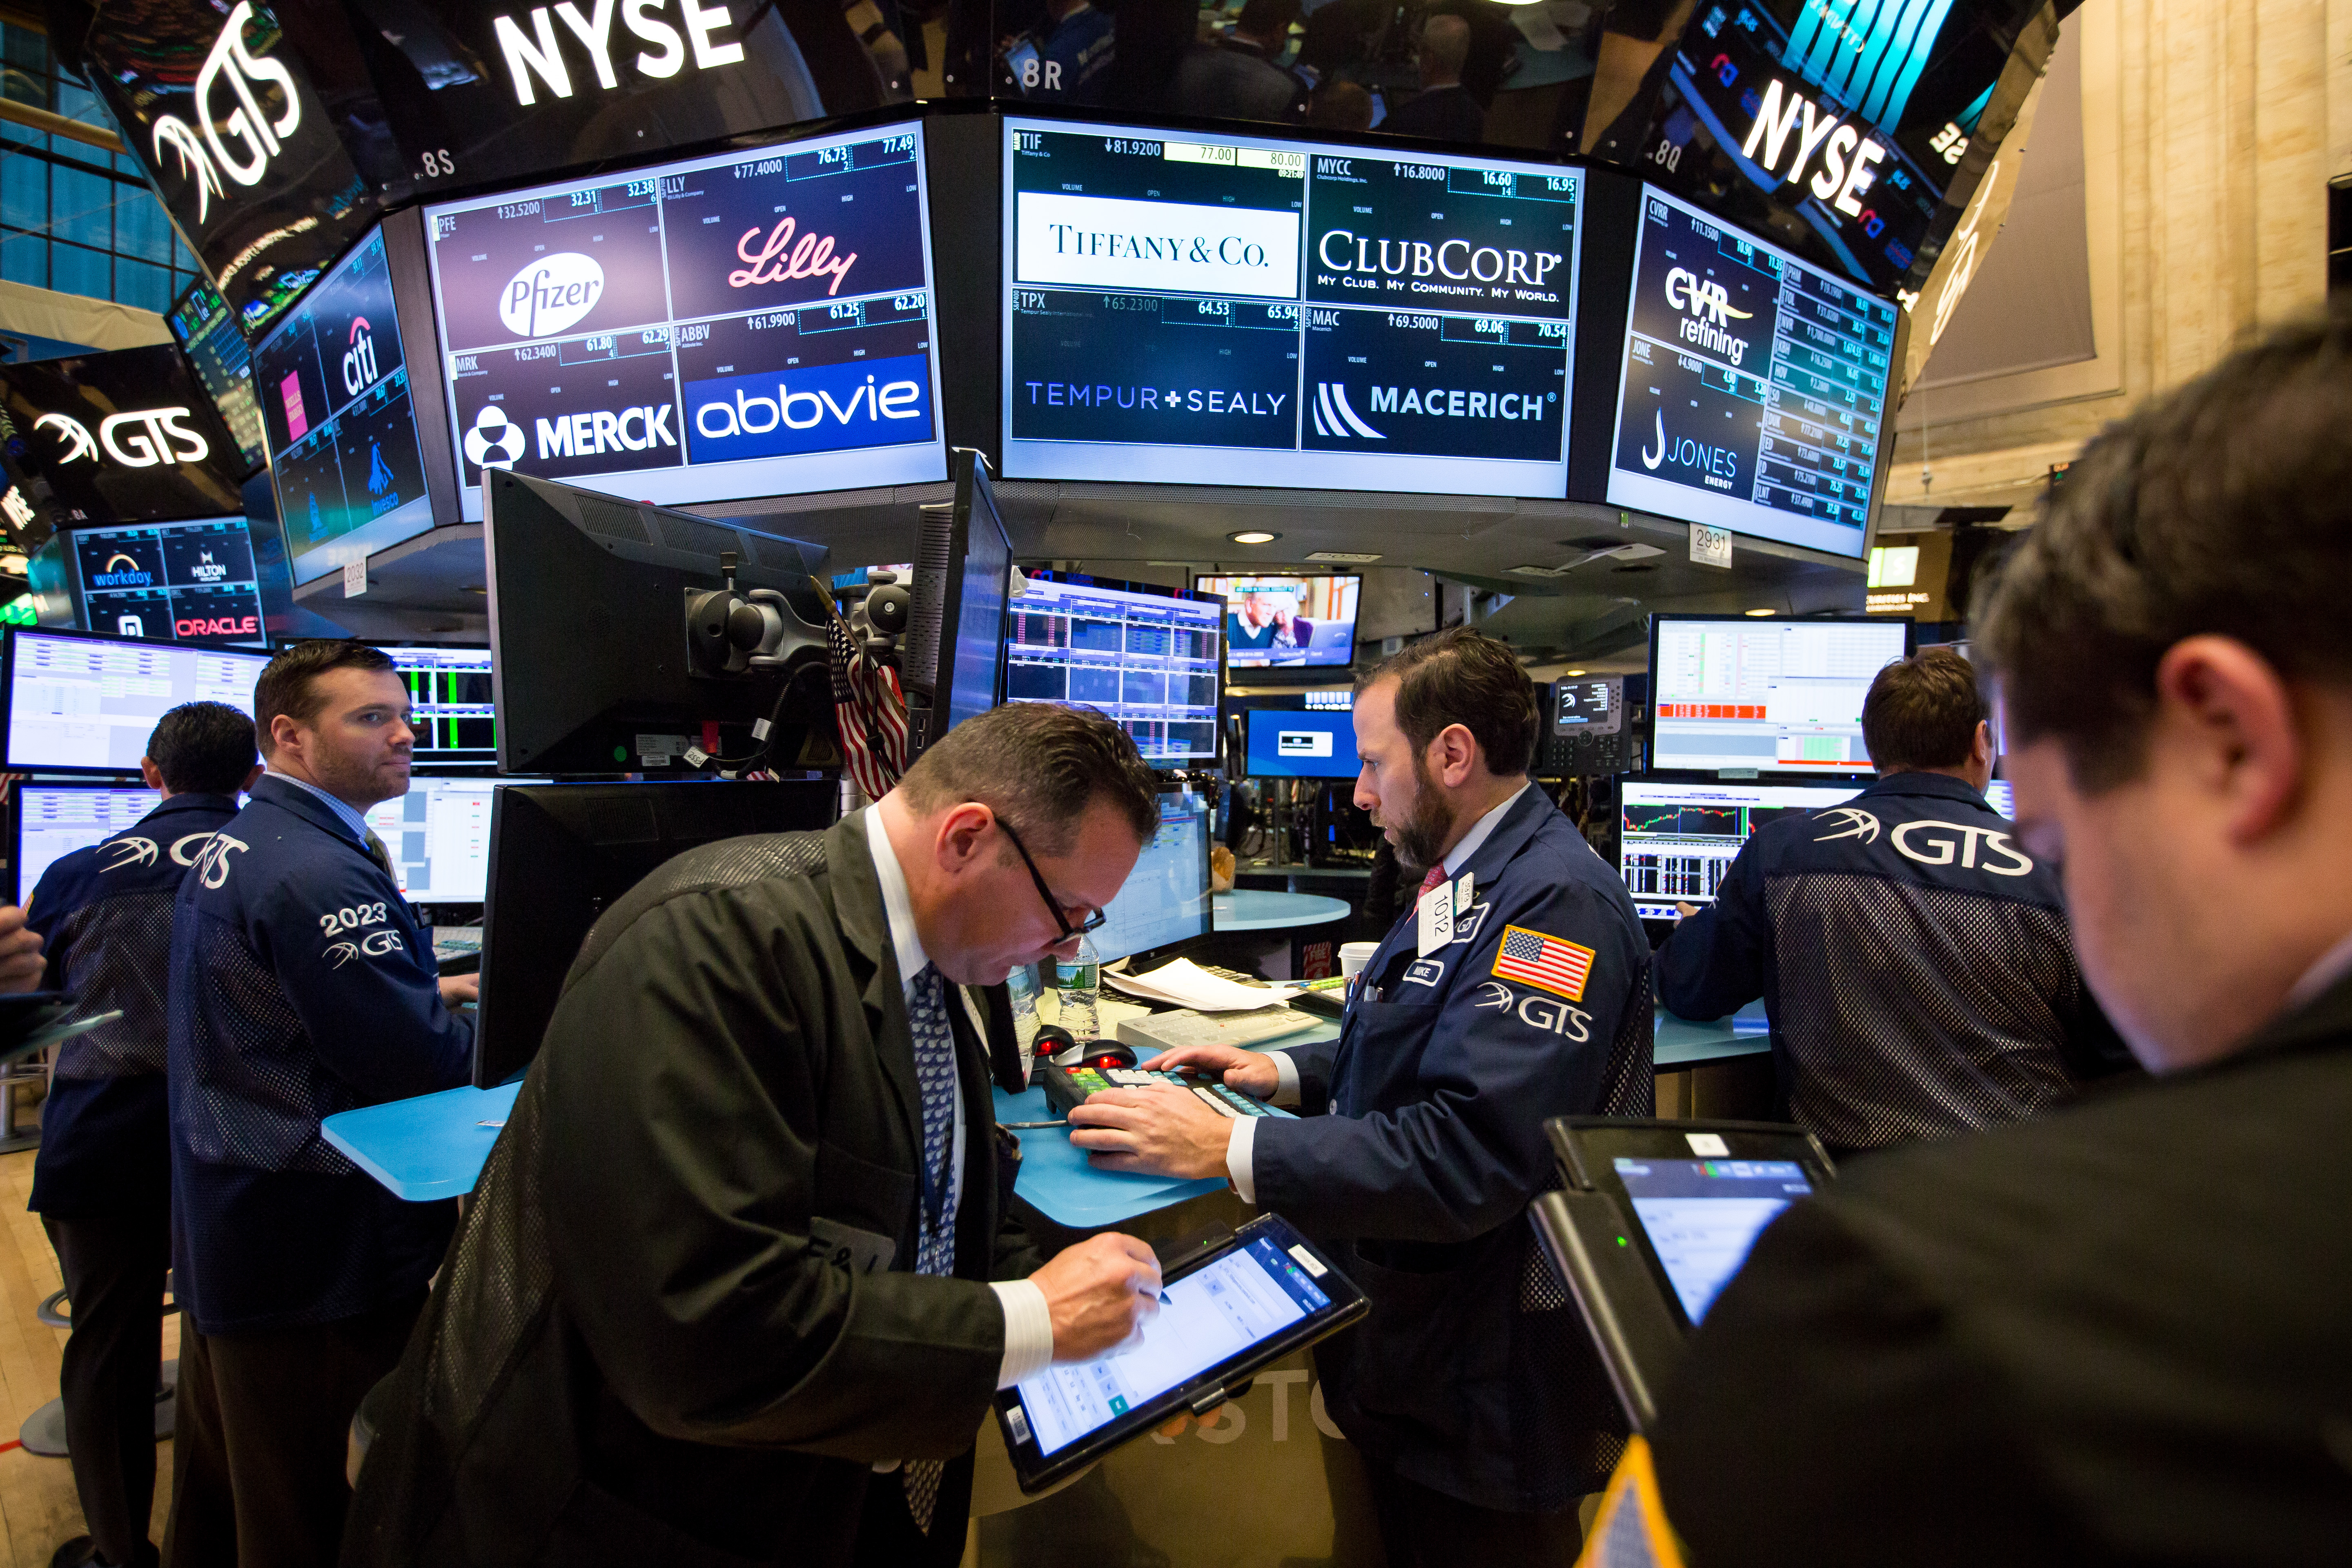 Trading On The Floor Of The NYSE As U.S. Stocks Decline With Banks, Health Shares Lower